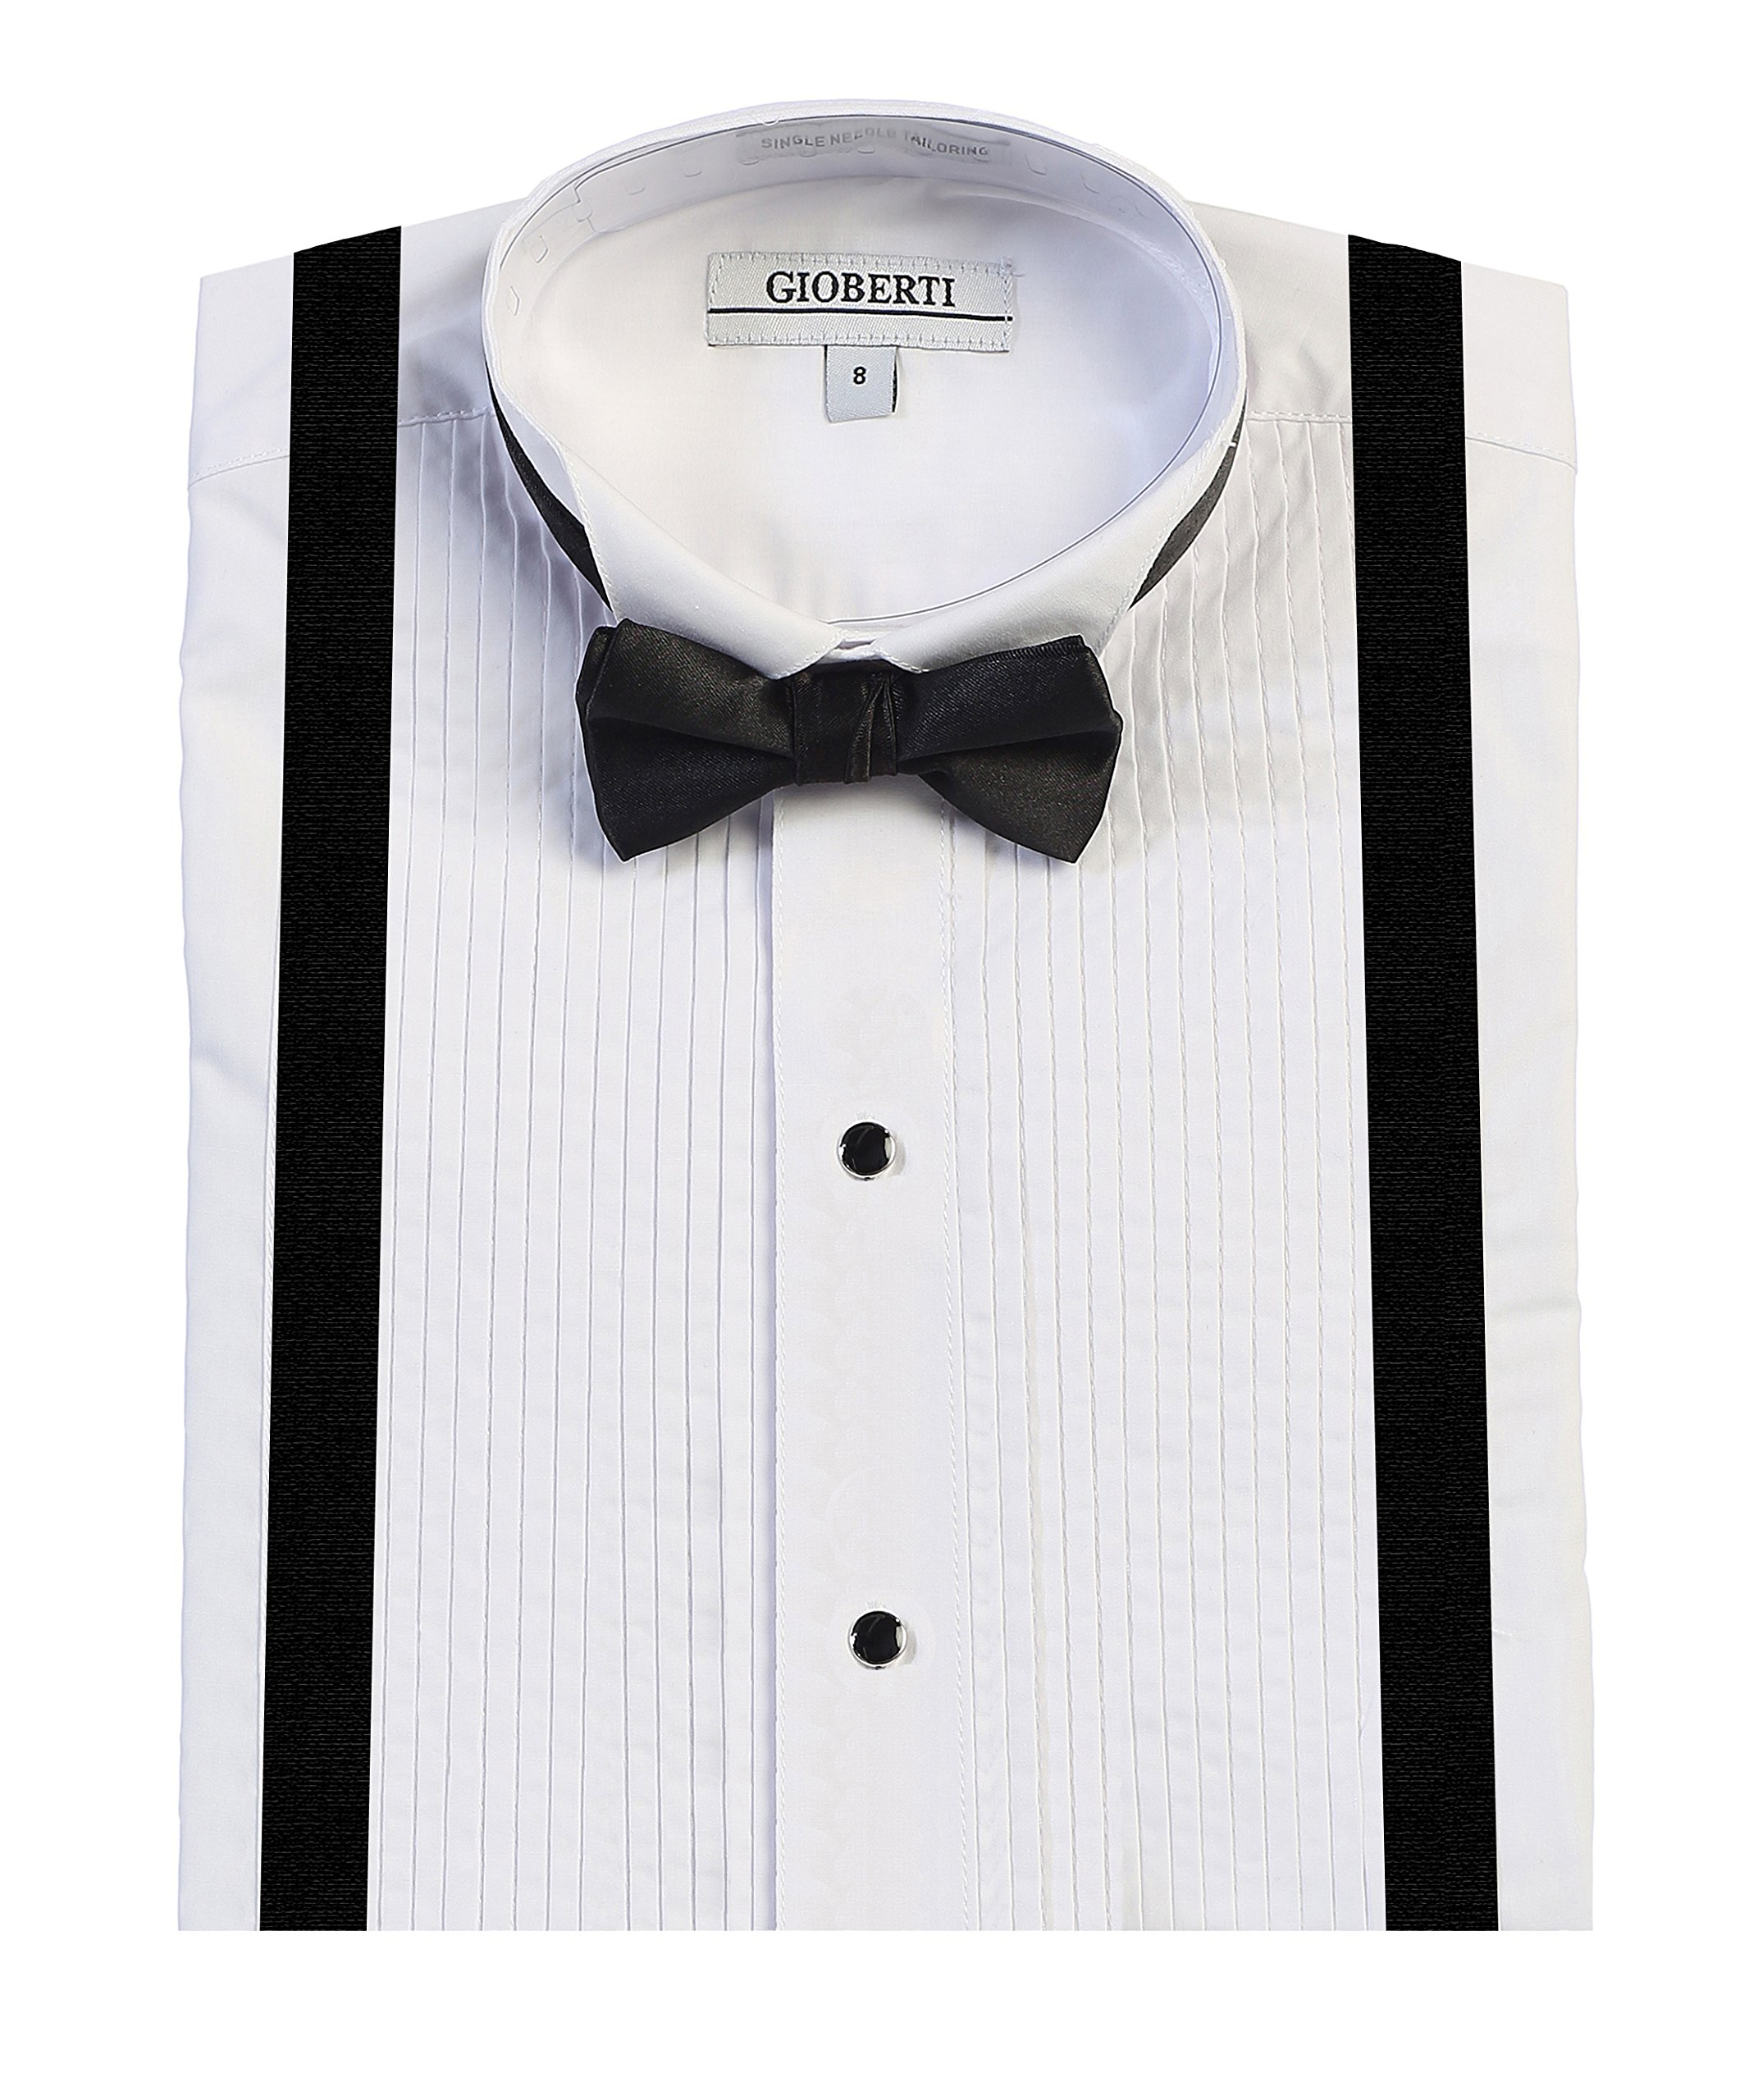 Gioberti Boy's Wing Tip Collar Tuxedo Dress Shirt with Bow Tie & Suspenders, White, Size 14